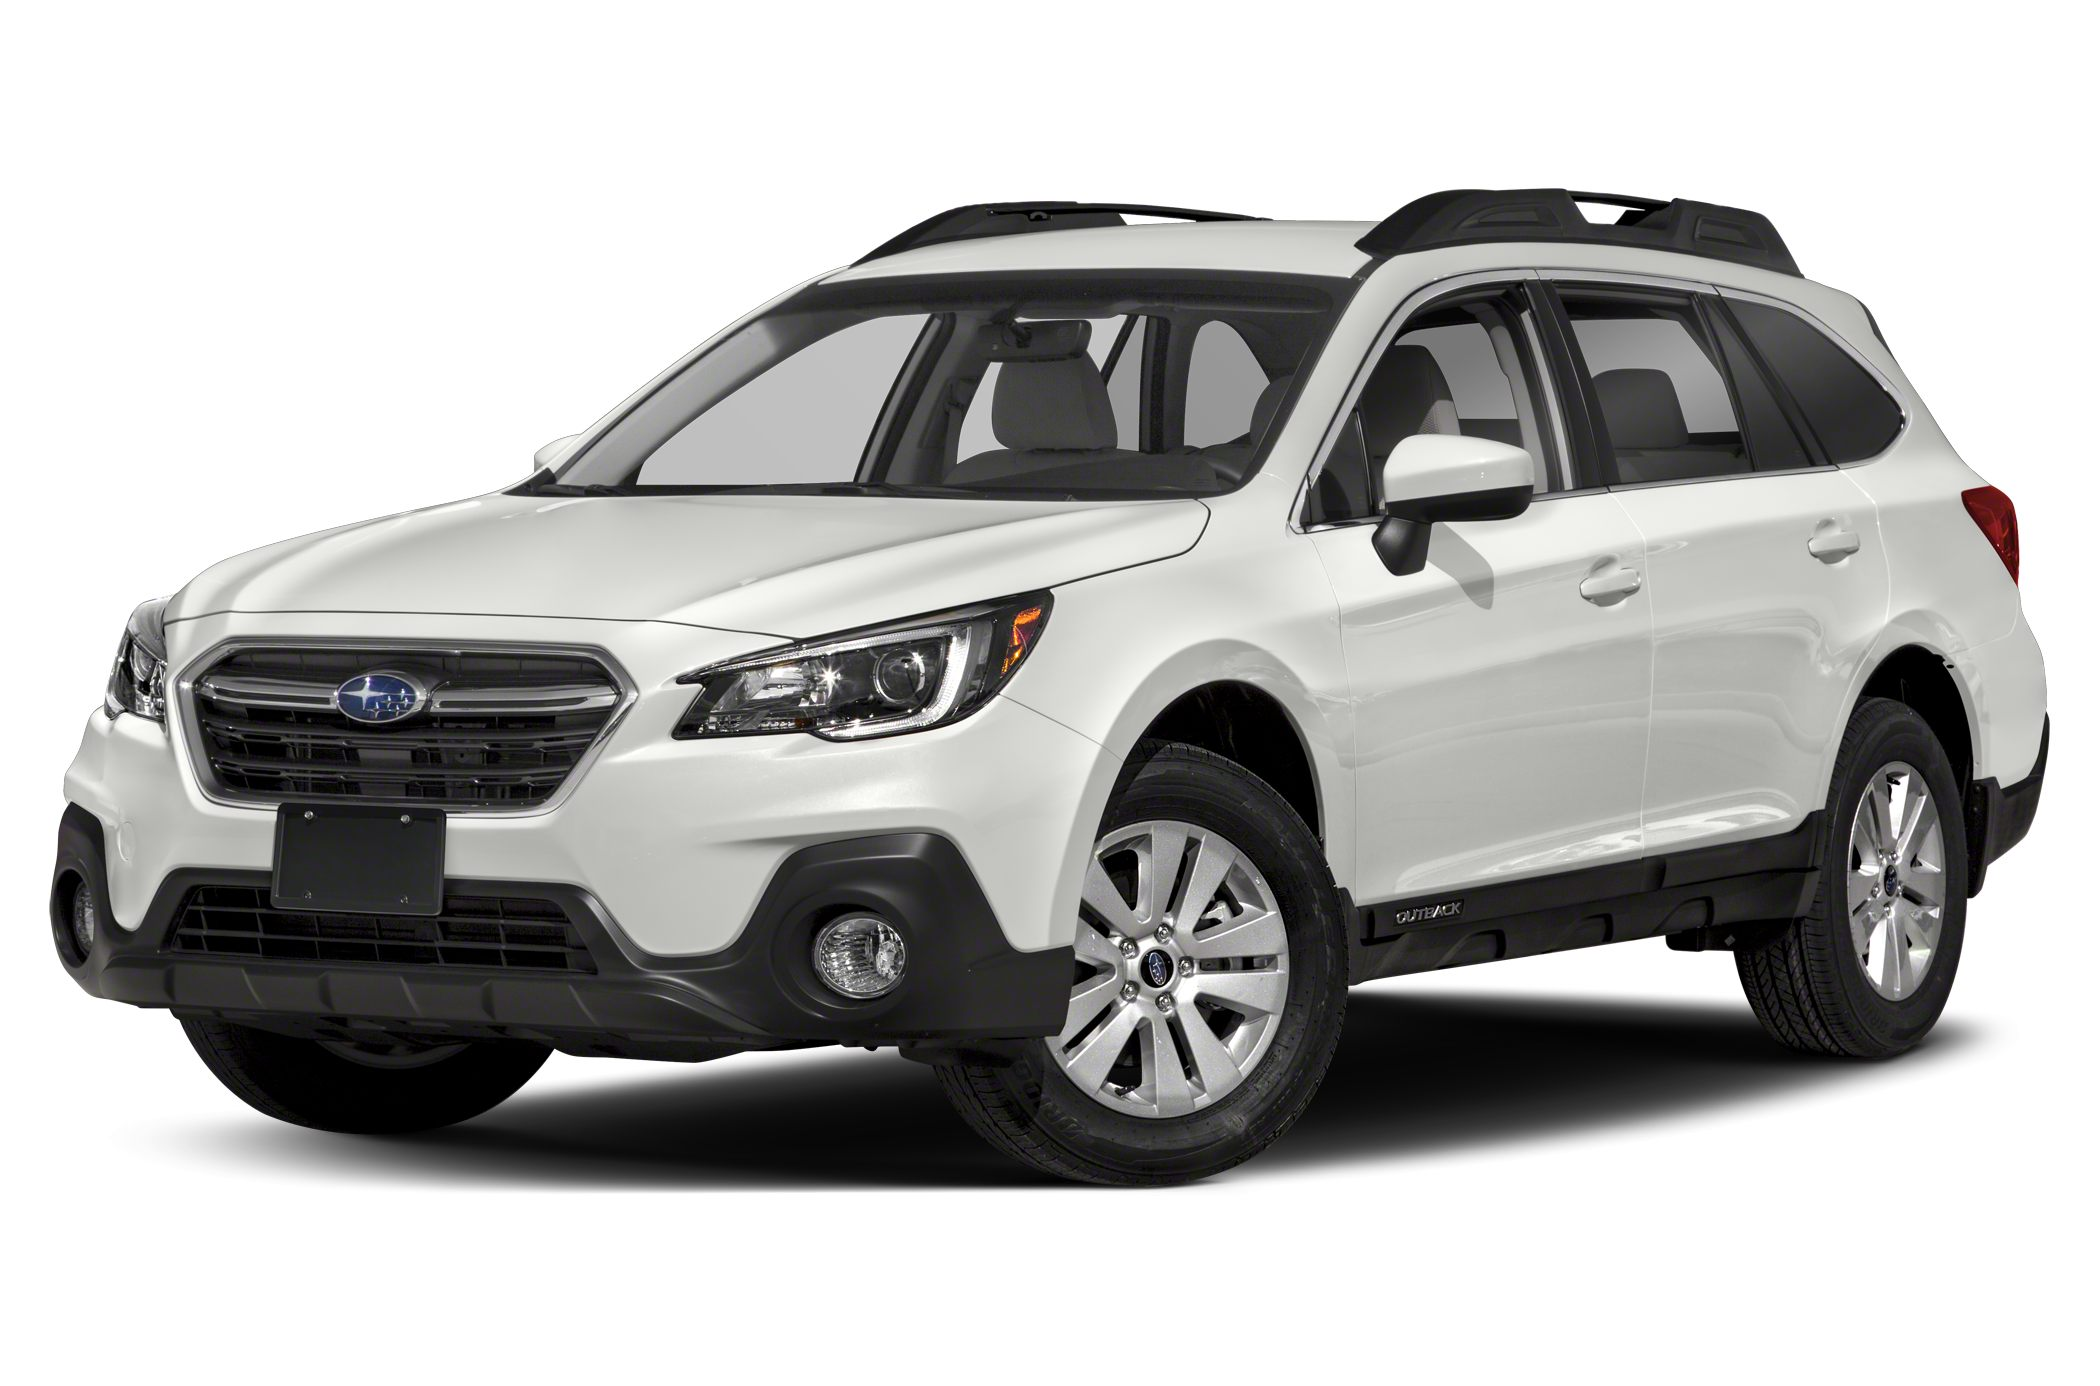 2018 subaru outback 2 5i limited for sale vin 4s4bsanc7j